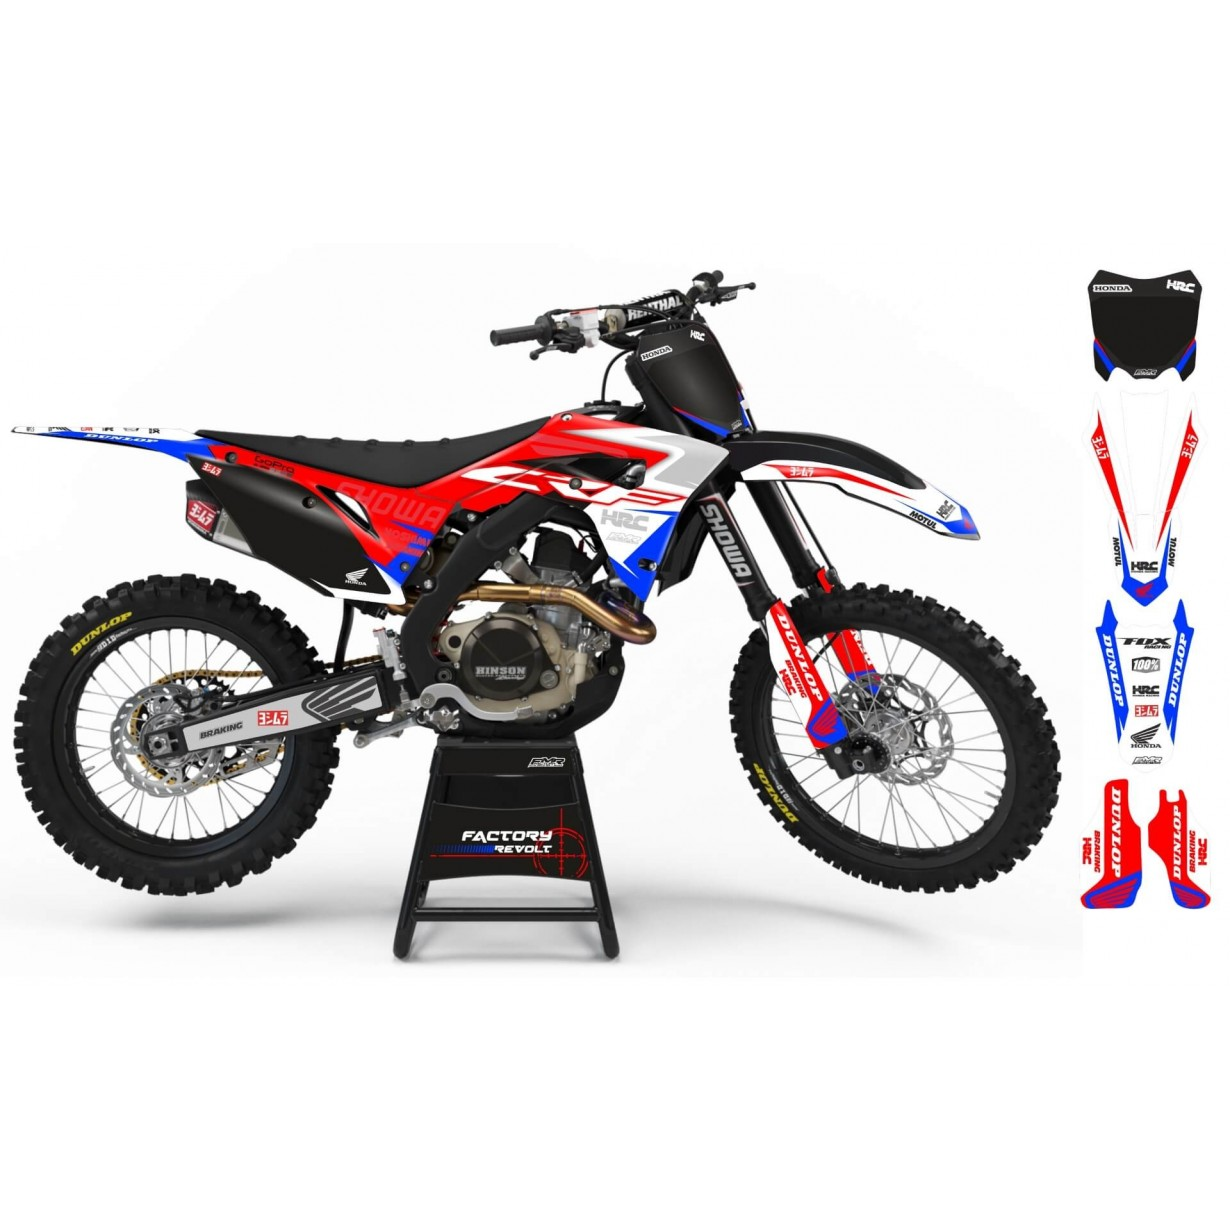 Kit déco Perso HONDA Factory Revolt A26A4 red/blue/white